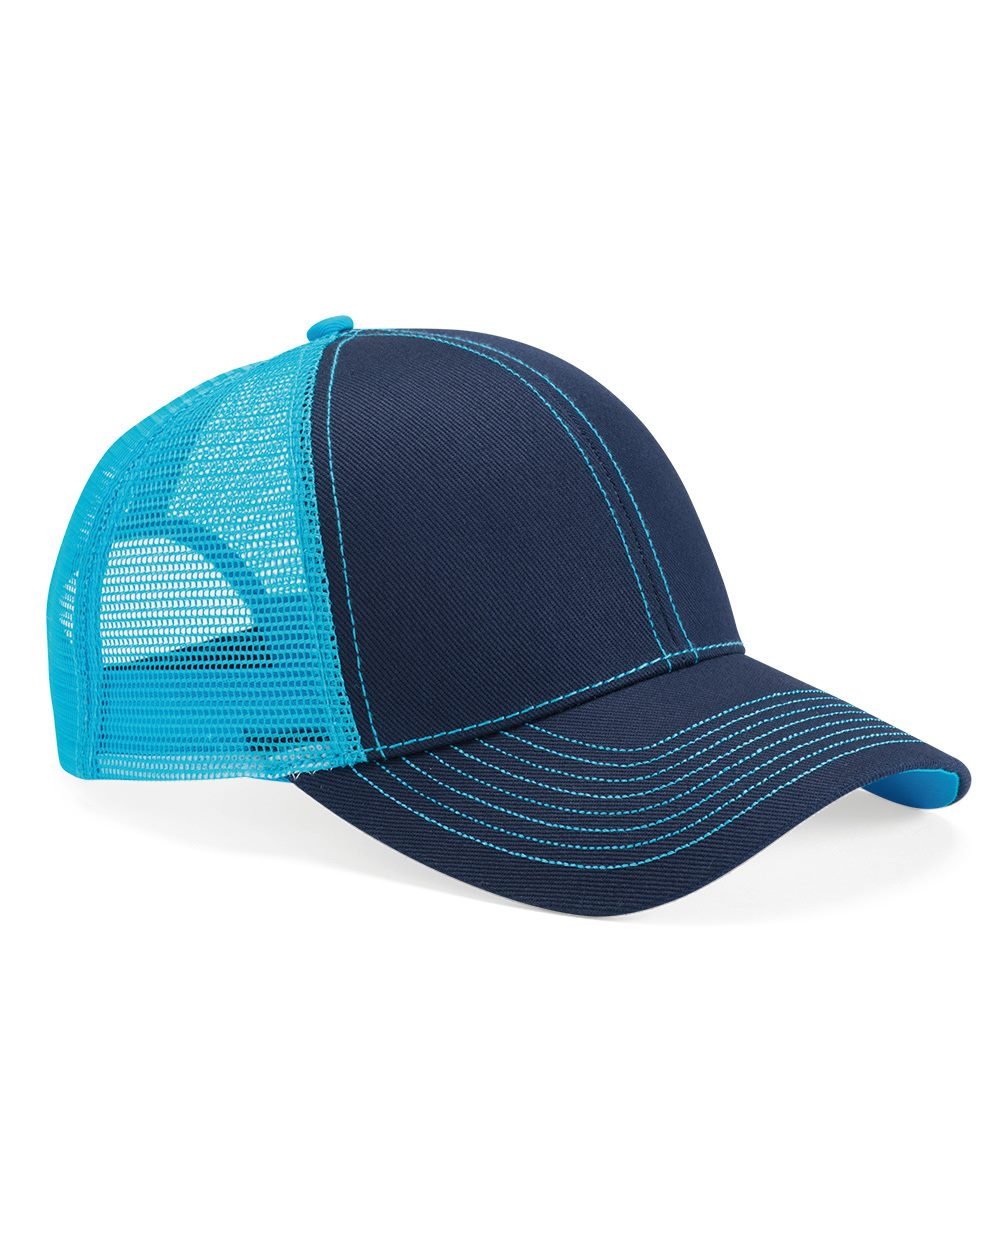 Mega Cap 7641 - Heavy Cotton Twill Front Trucker Cap